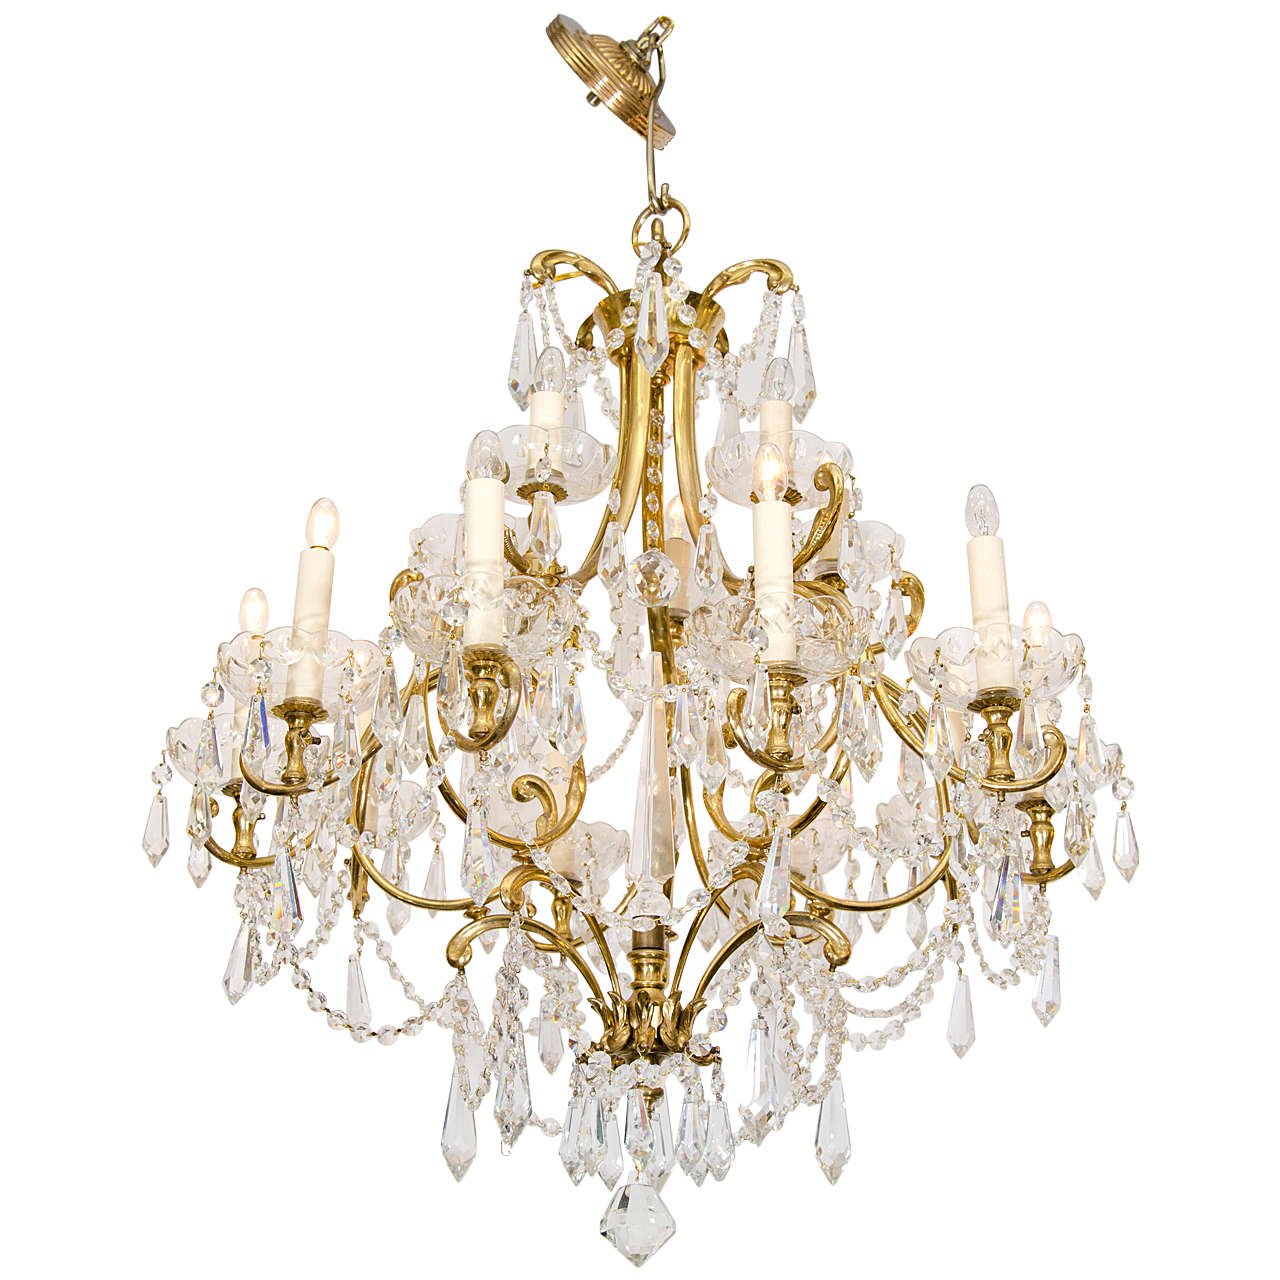 1950s italian fifteen light crystal and brass chandelier for sale at 1950s italian fifteen light crystal and brass chandelier for sale aloadofball